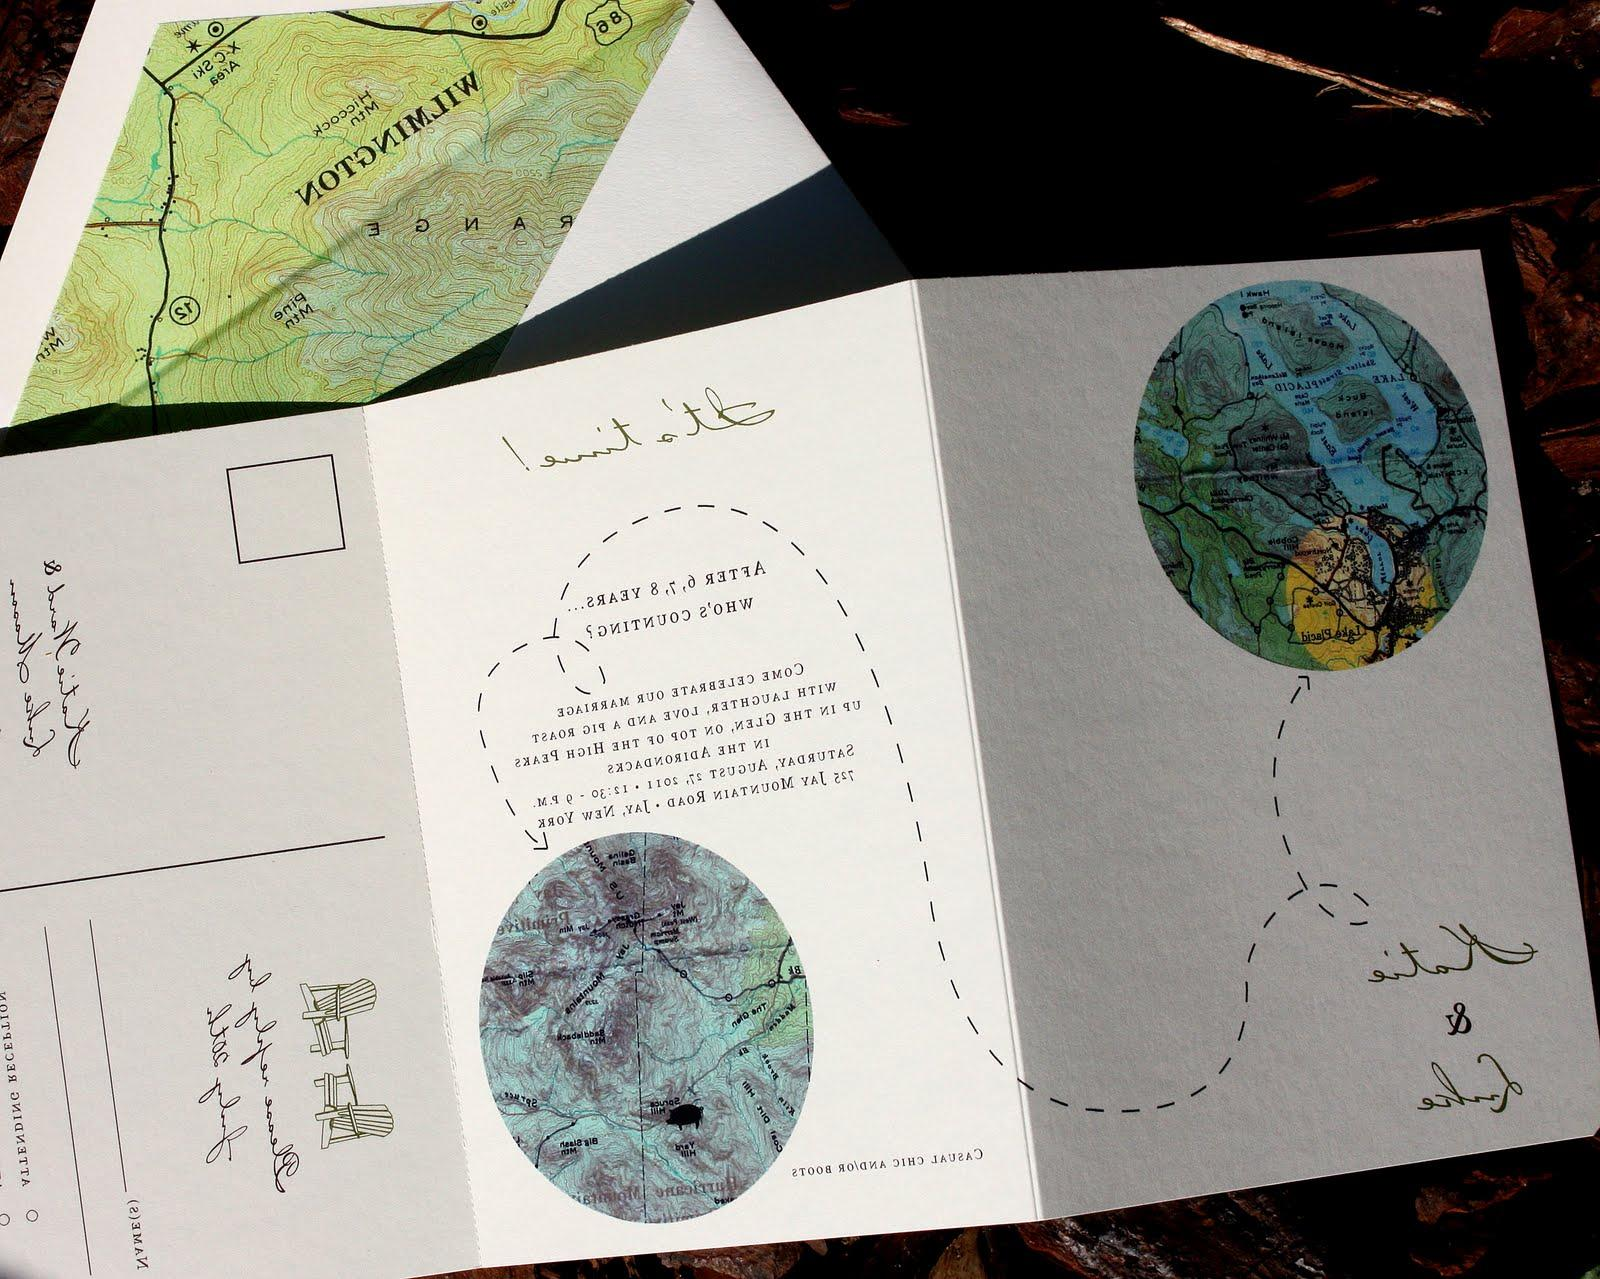 A tri-fold invitation for a